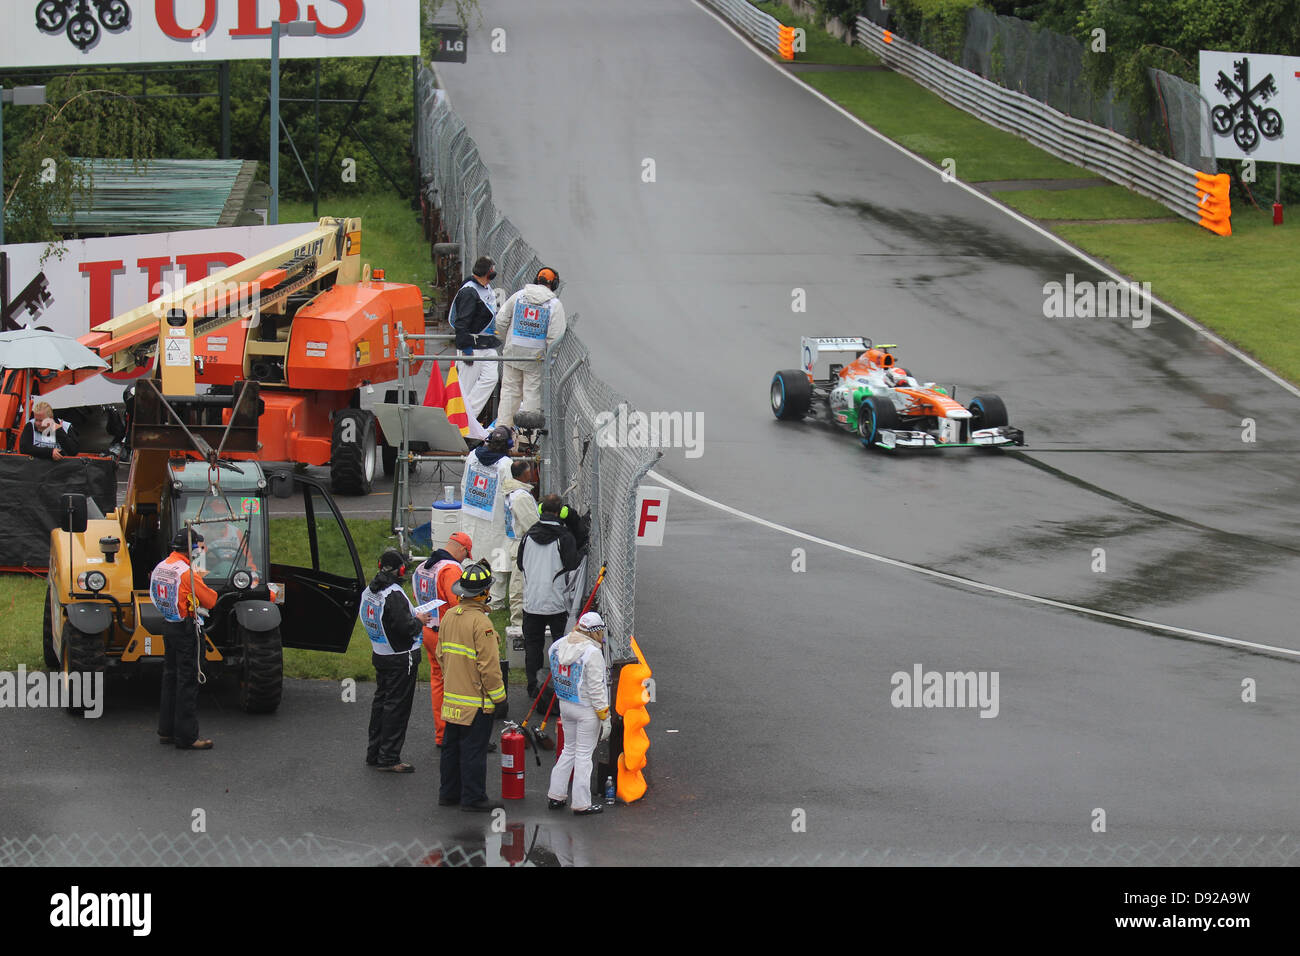 Force India team car, 2013 Montreal Grand Prix Stock Photo